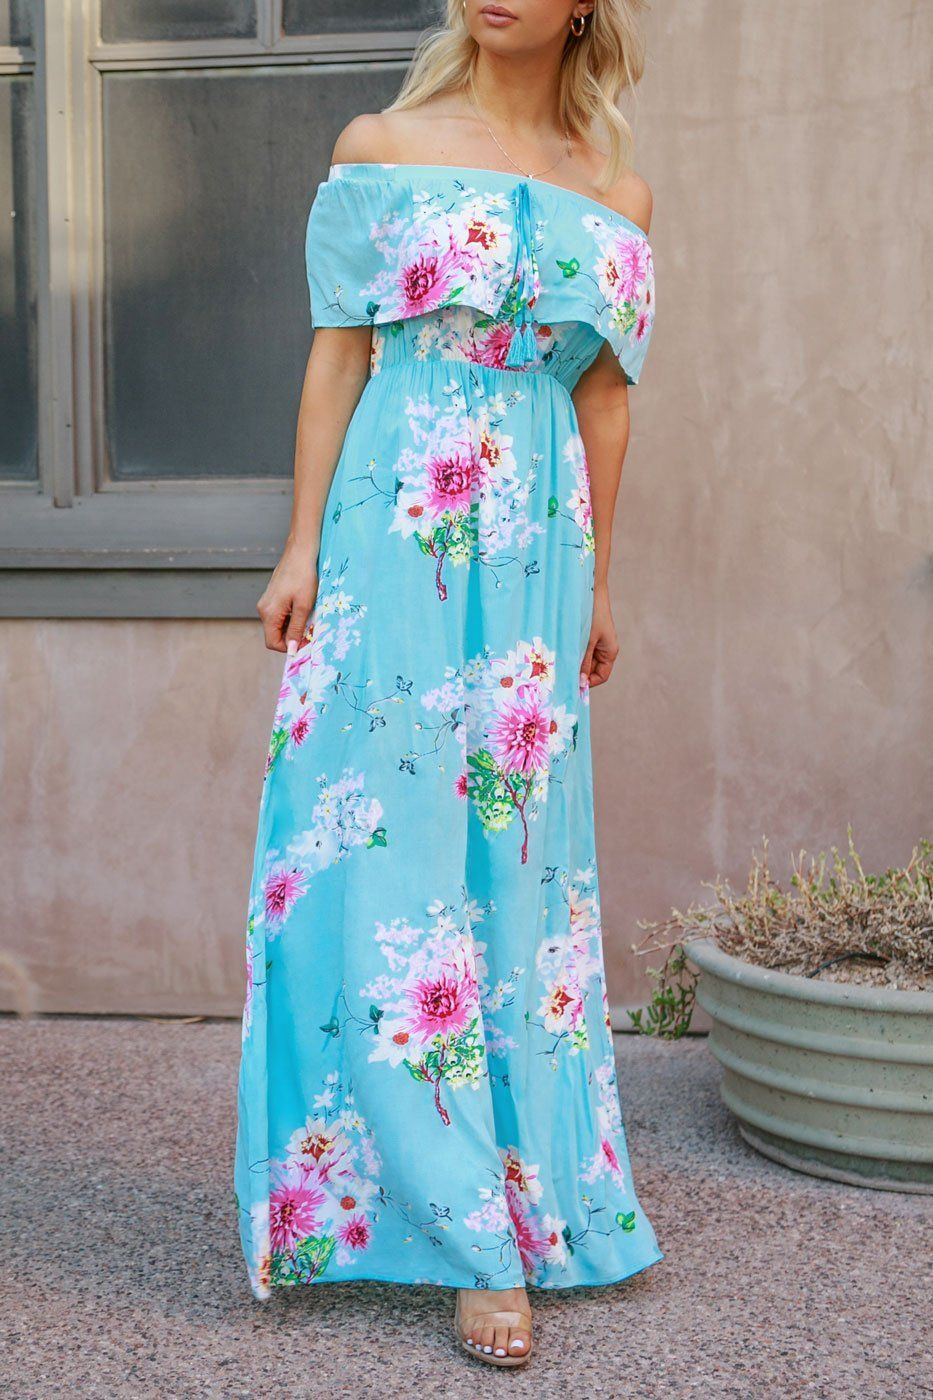 Strapless Floral Maxi Dress With Pockets Ivory Floral Maxi Dress Boho Dresses Long Maxi Dress Prom [ 2047 x 1365 Pixel ]